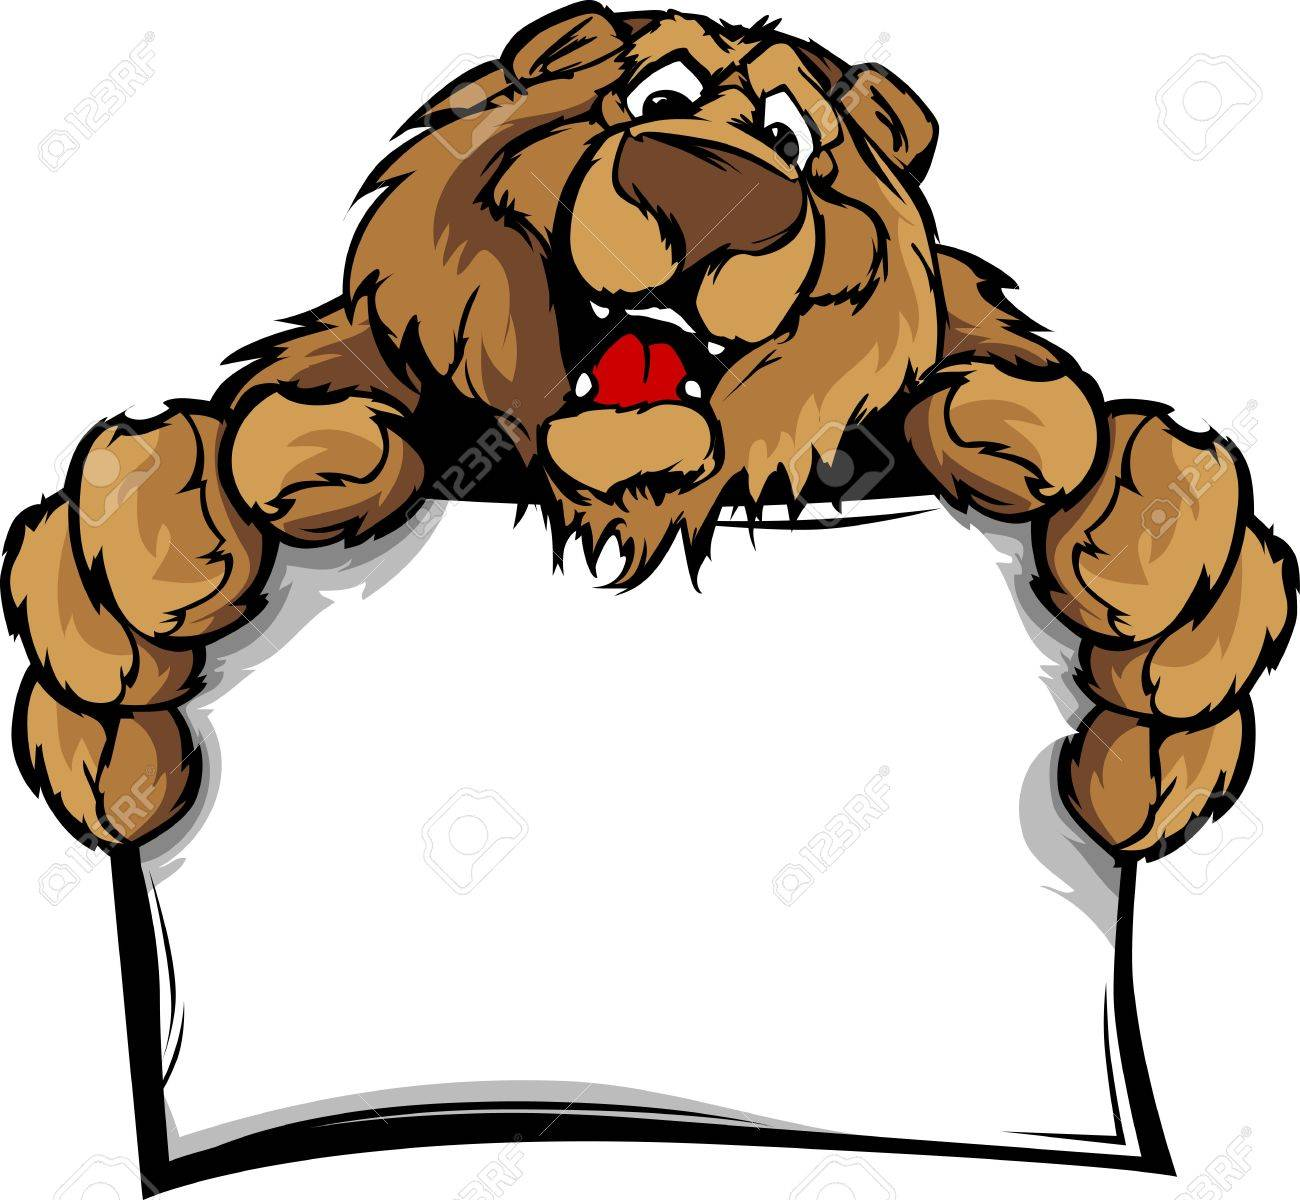 Bear Head Smiling Mascot  Holding Sign Illustration Stock Vector - 13057952